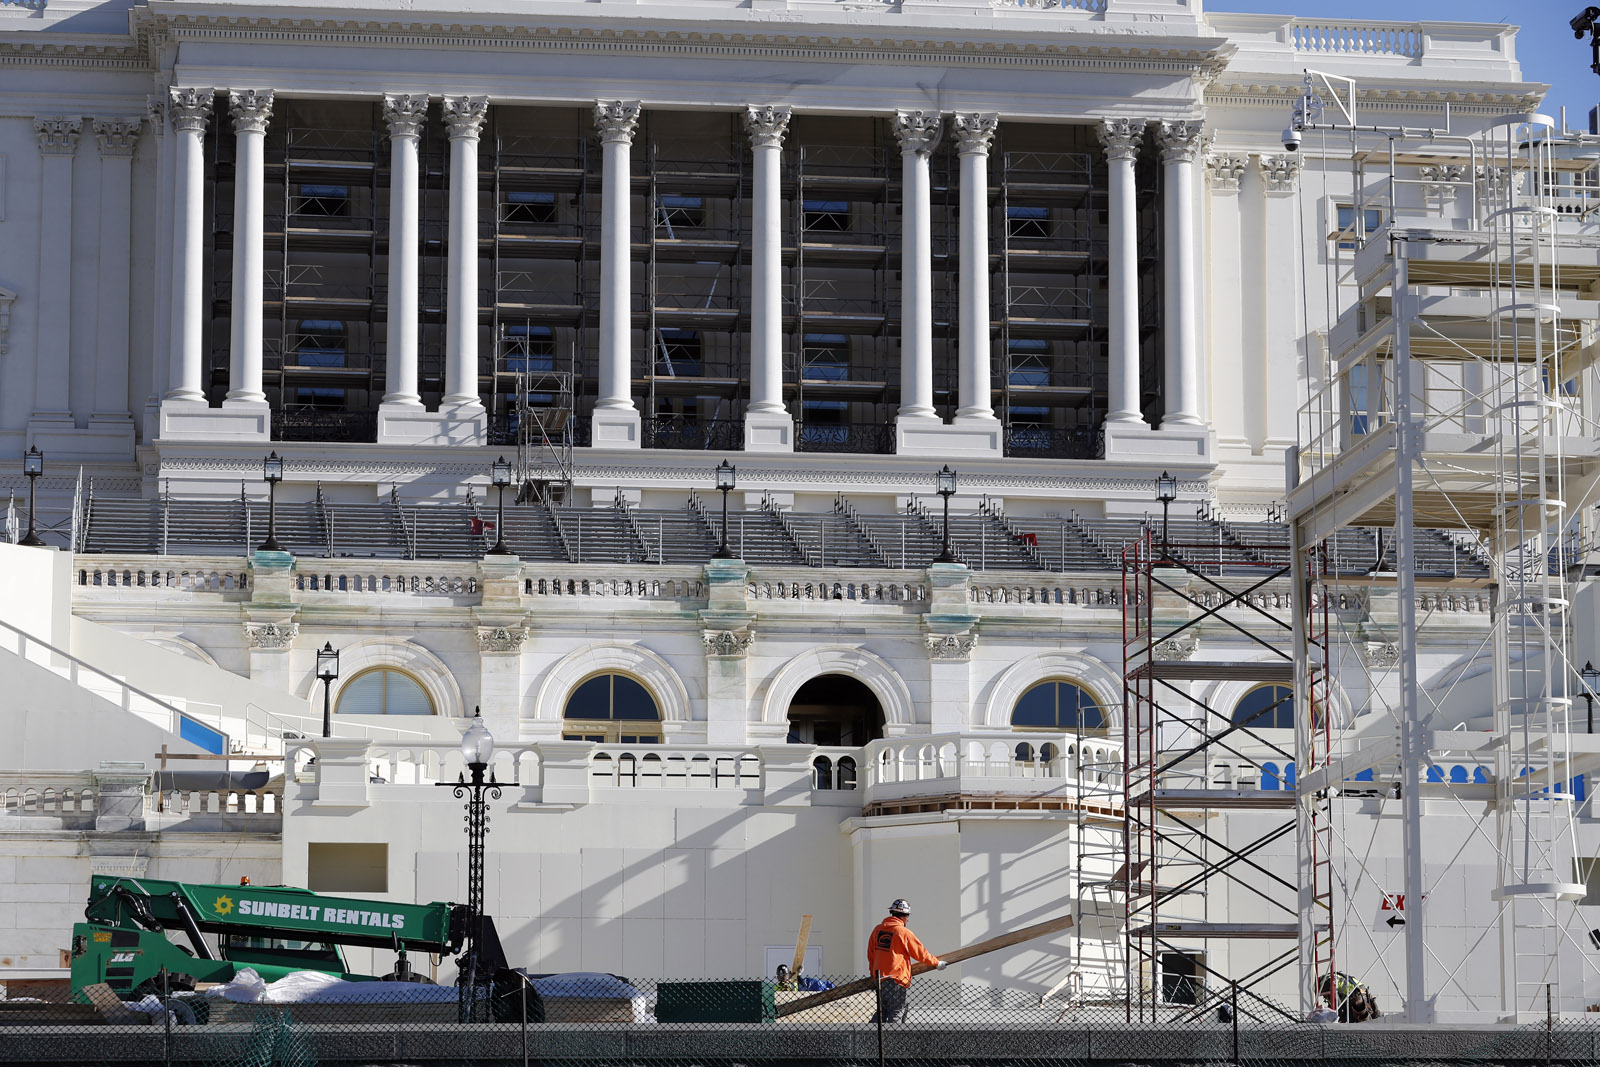 The West Front of the Capitol is seen as work continues on the stand for the inauguration of President-elect Donald Trump in Washington, Wednesday, Dec. 28, 2016. Trump will be sworn in at noon on Jan. 20, 2017 as America's 45th president. (AP Photo/Alex Brandon)